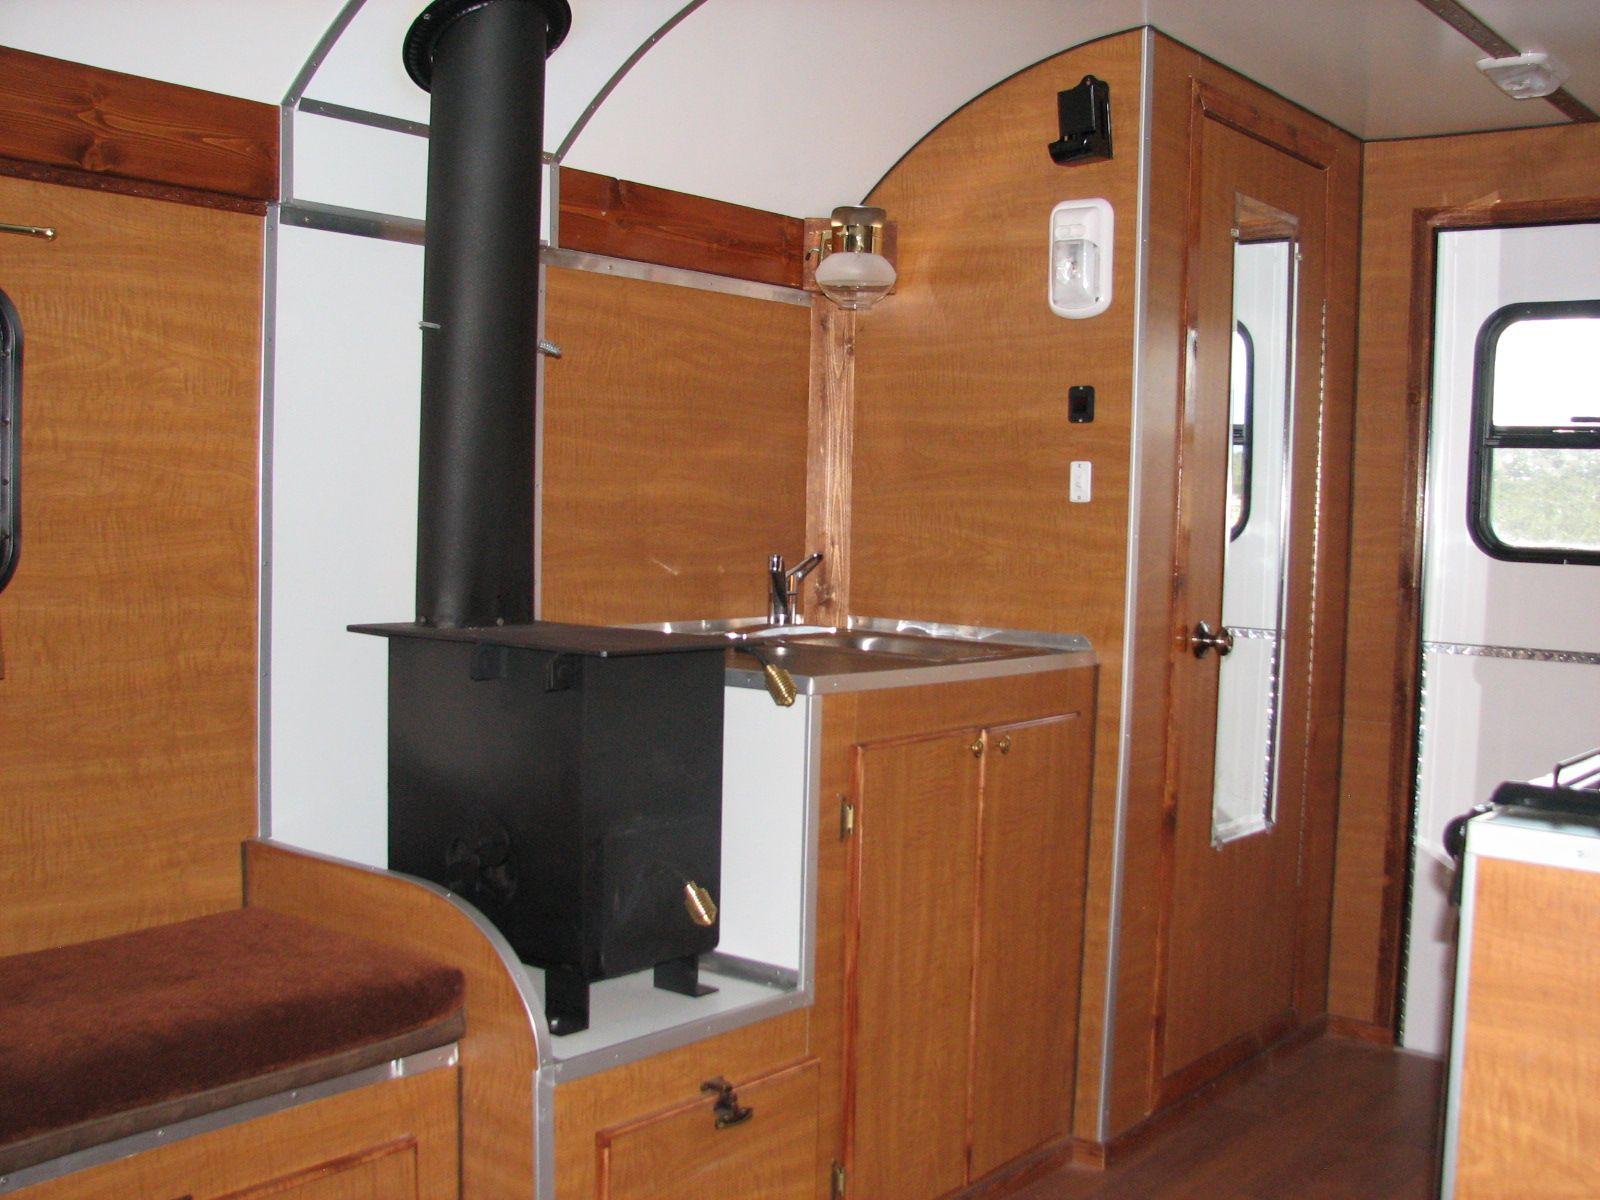 Rv Wood Burning Stove Below Are Pictures Of The Standard